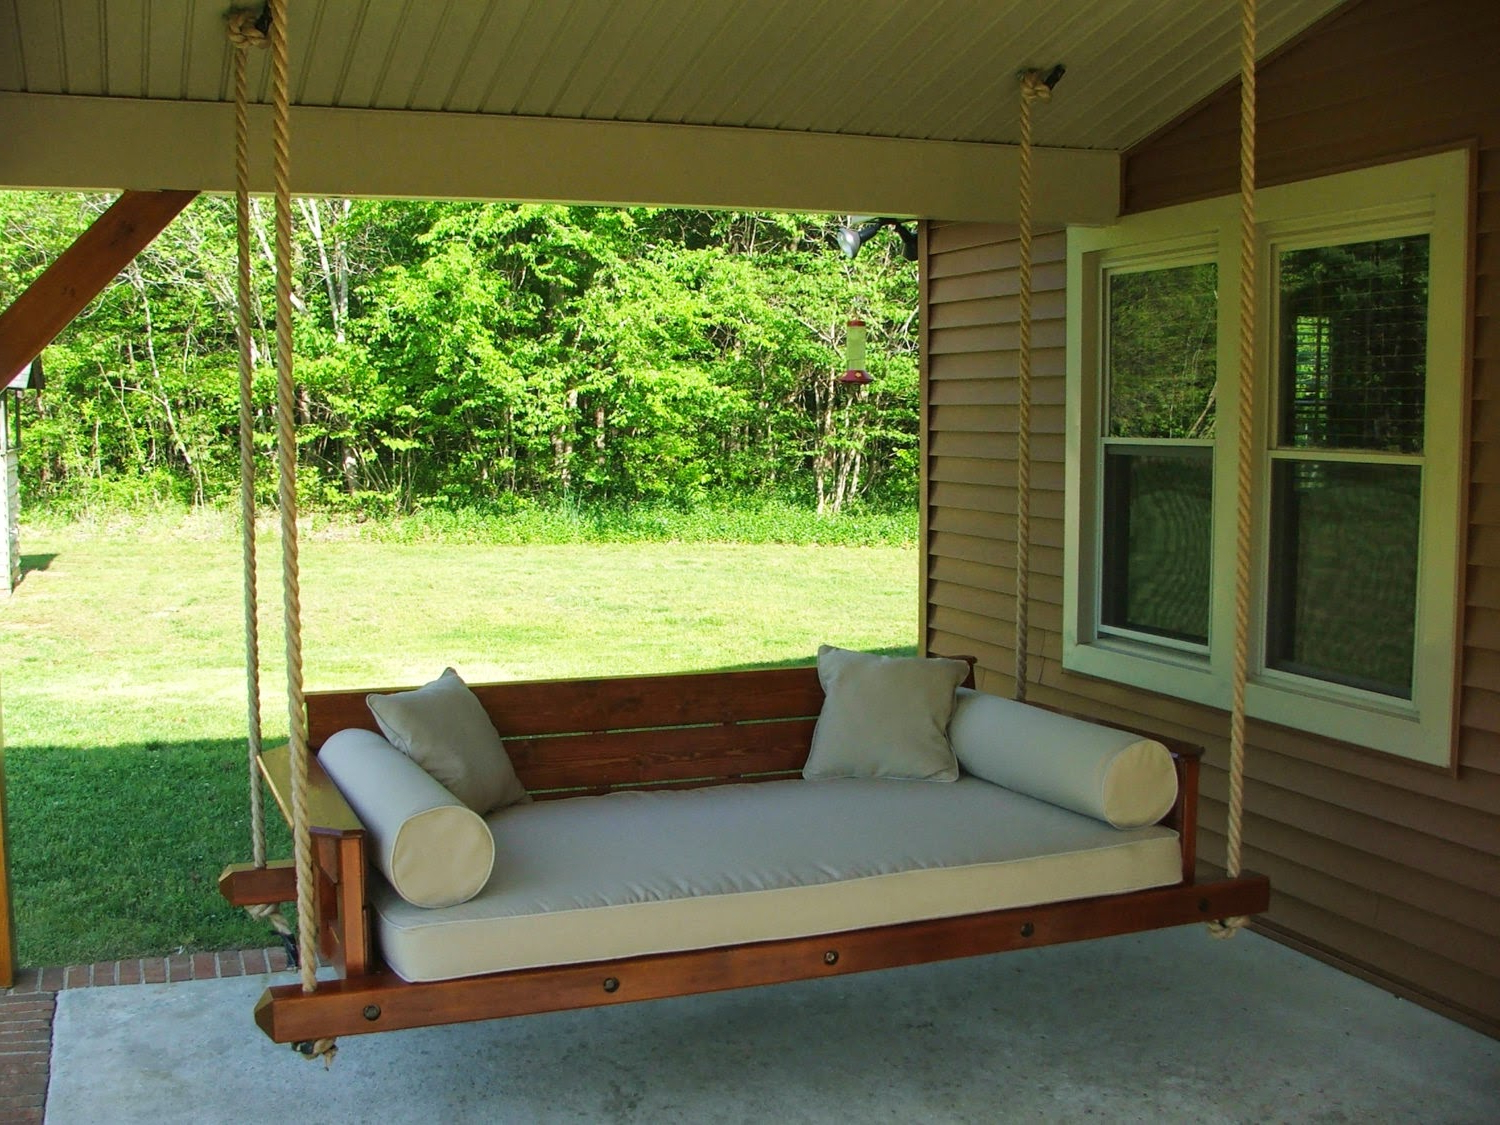 Royals Courage : The Way To With Regard To Newest Classic Porch Swings (View 15 of 30)